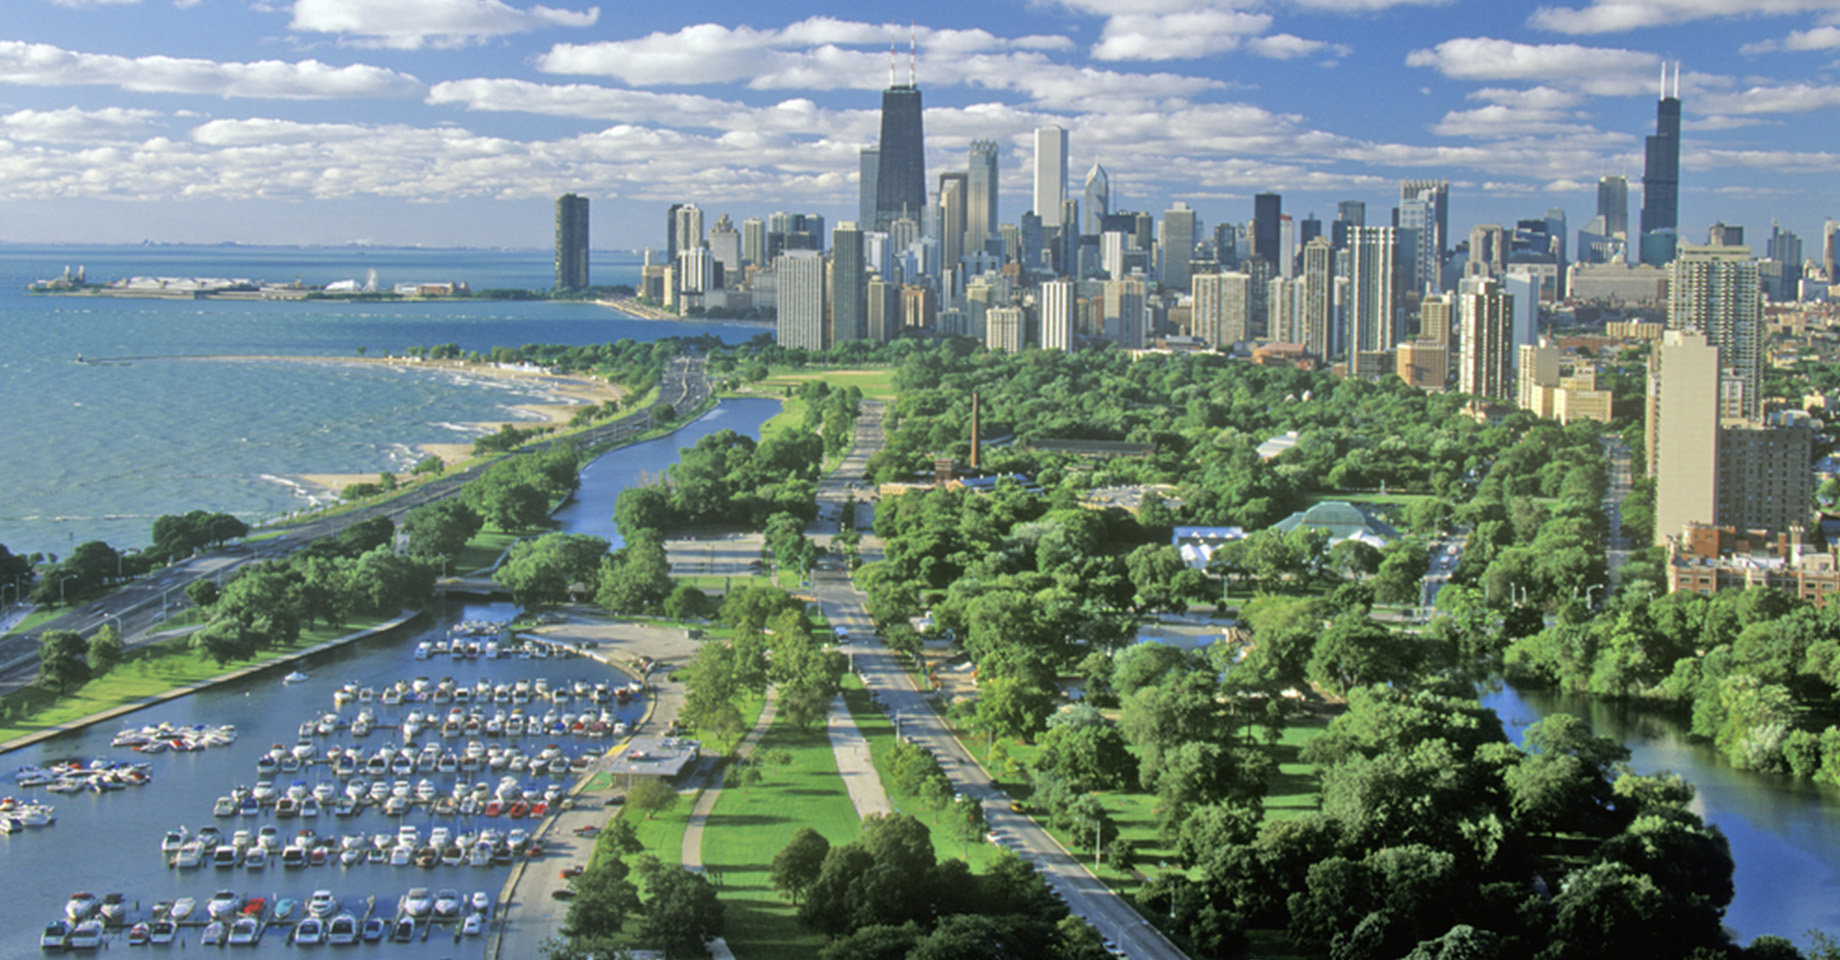 Aerial shot of Chicago